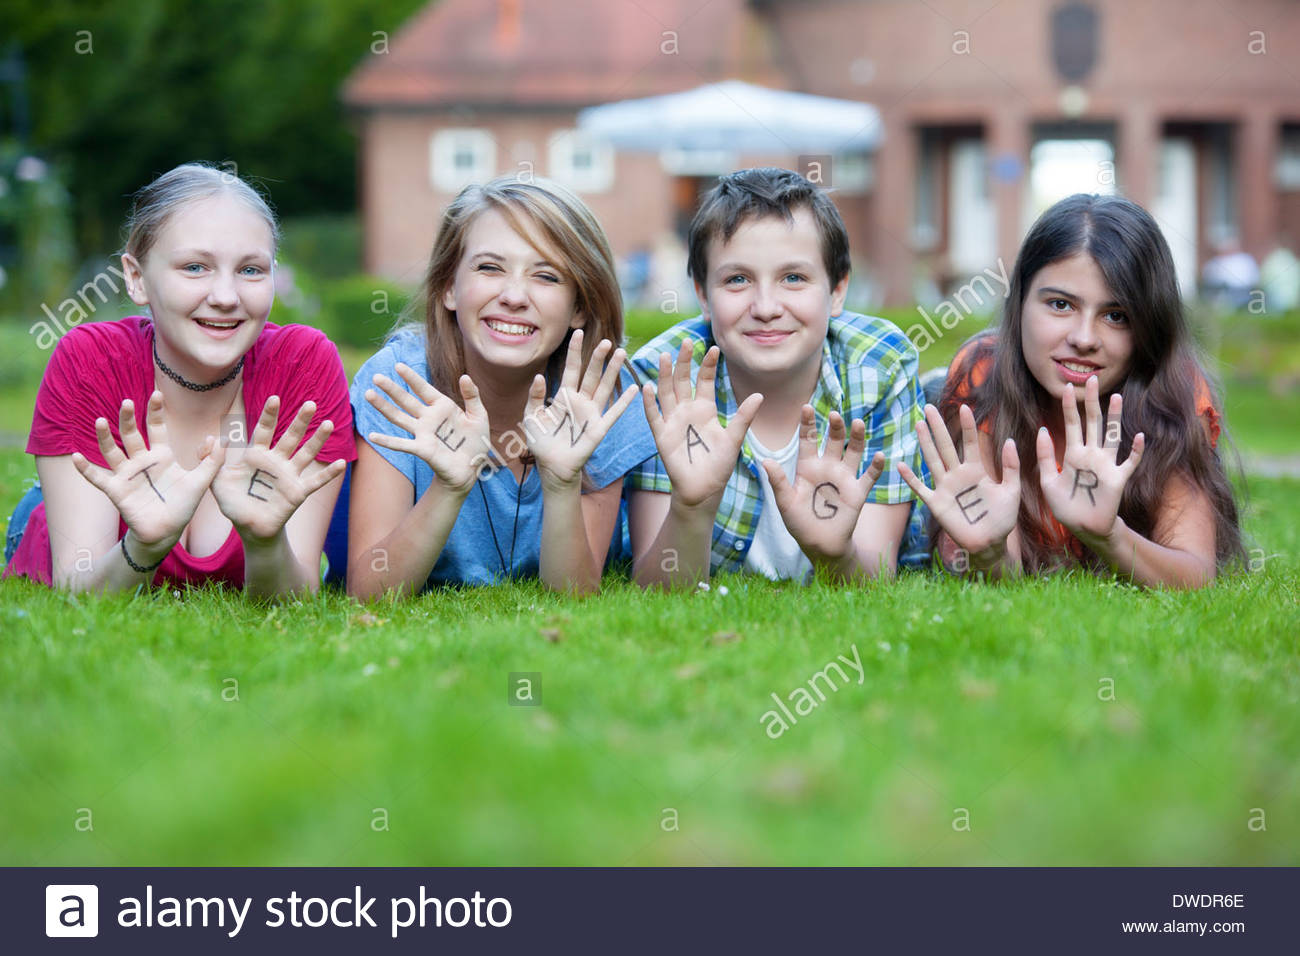 Three girls and one boy showing together the word teenager on their palms - Stock Image